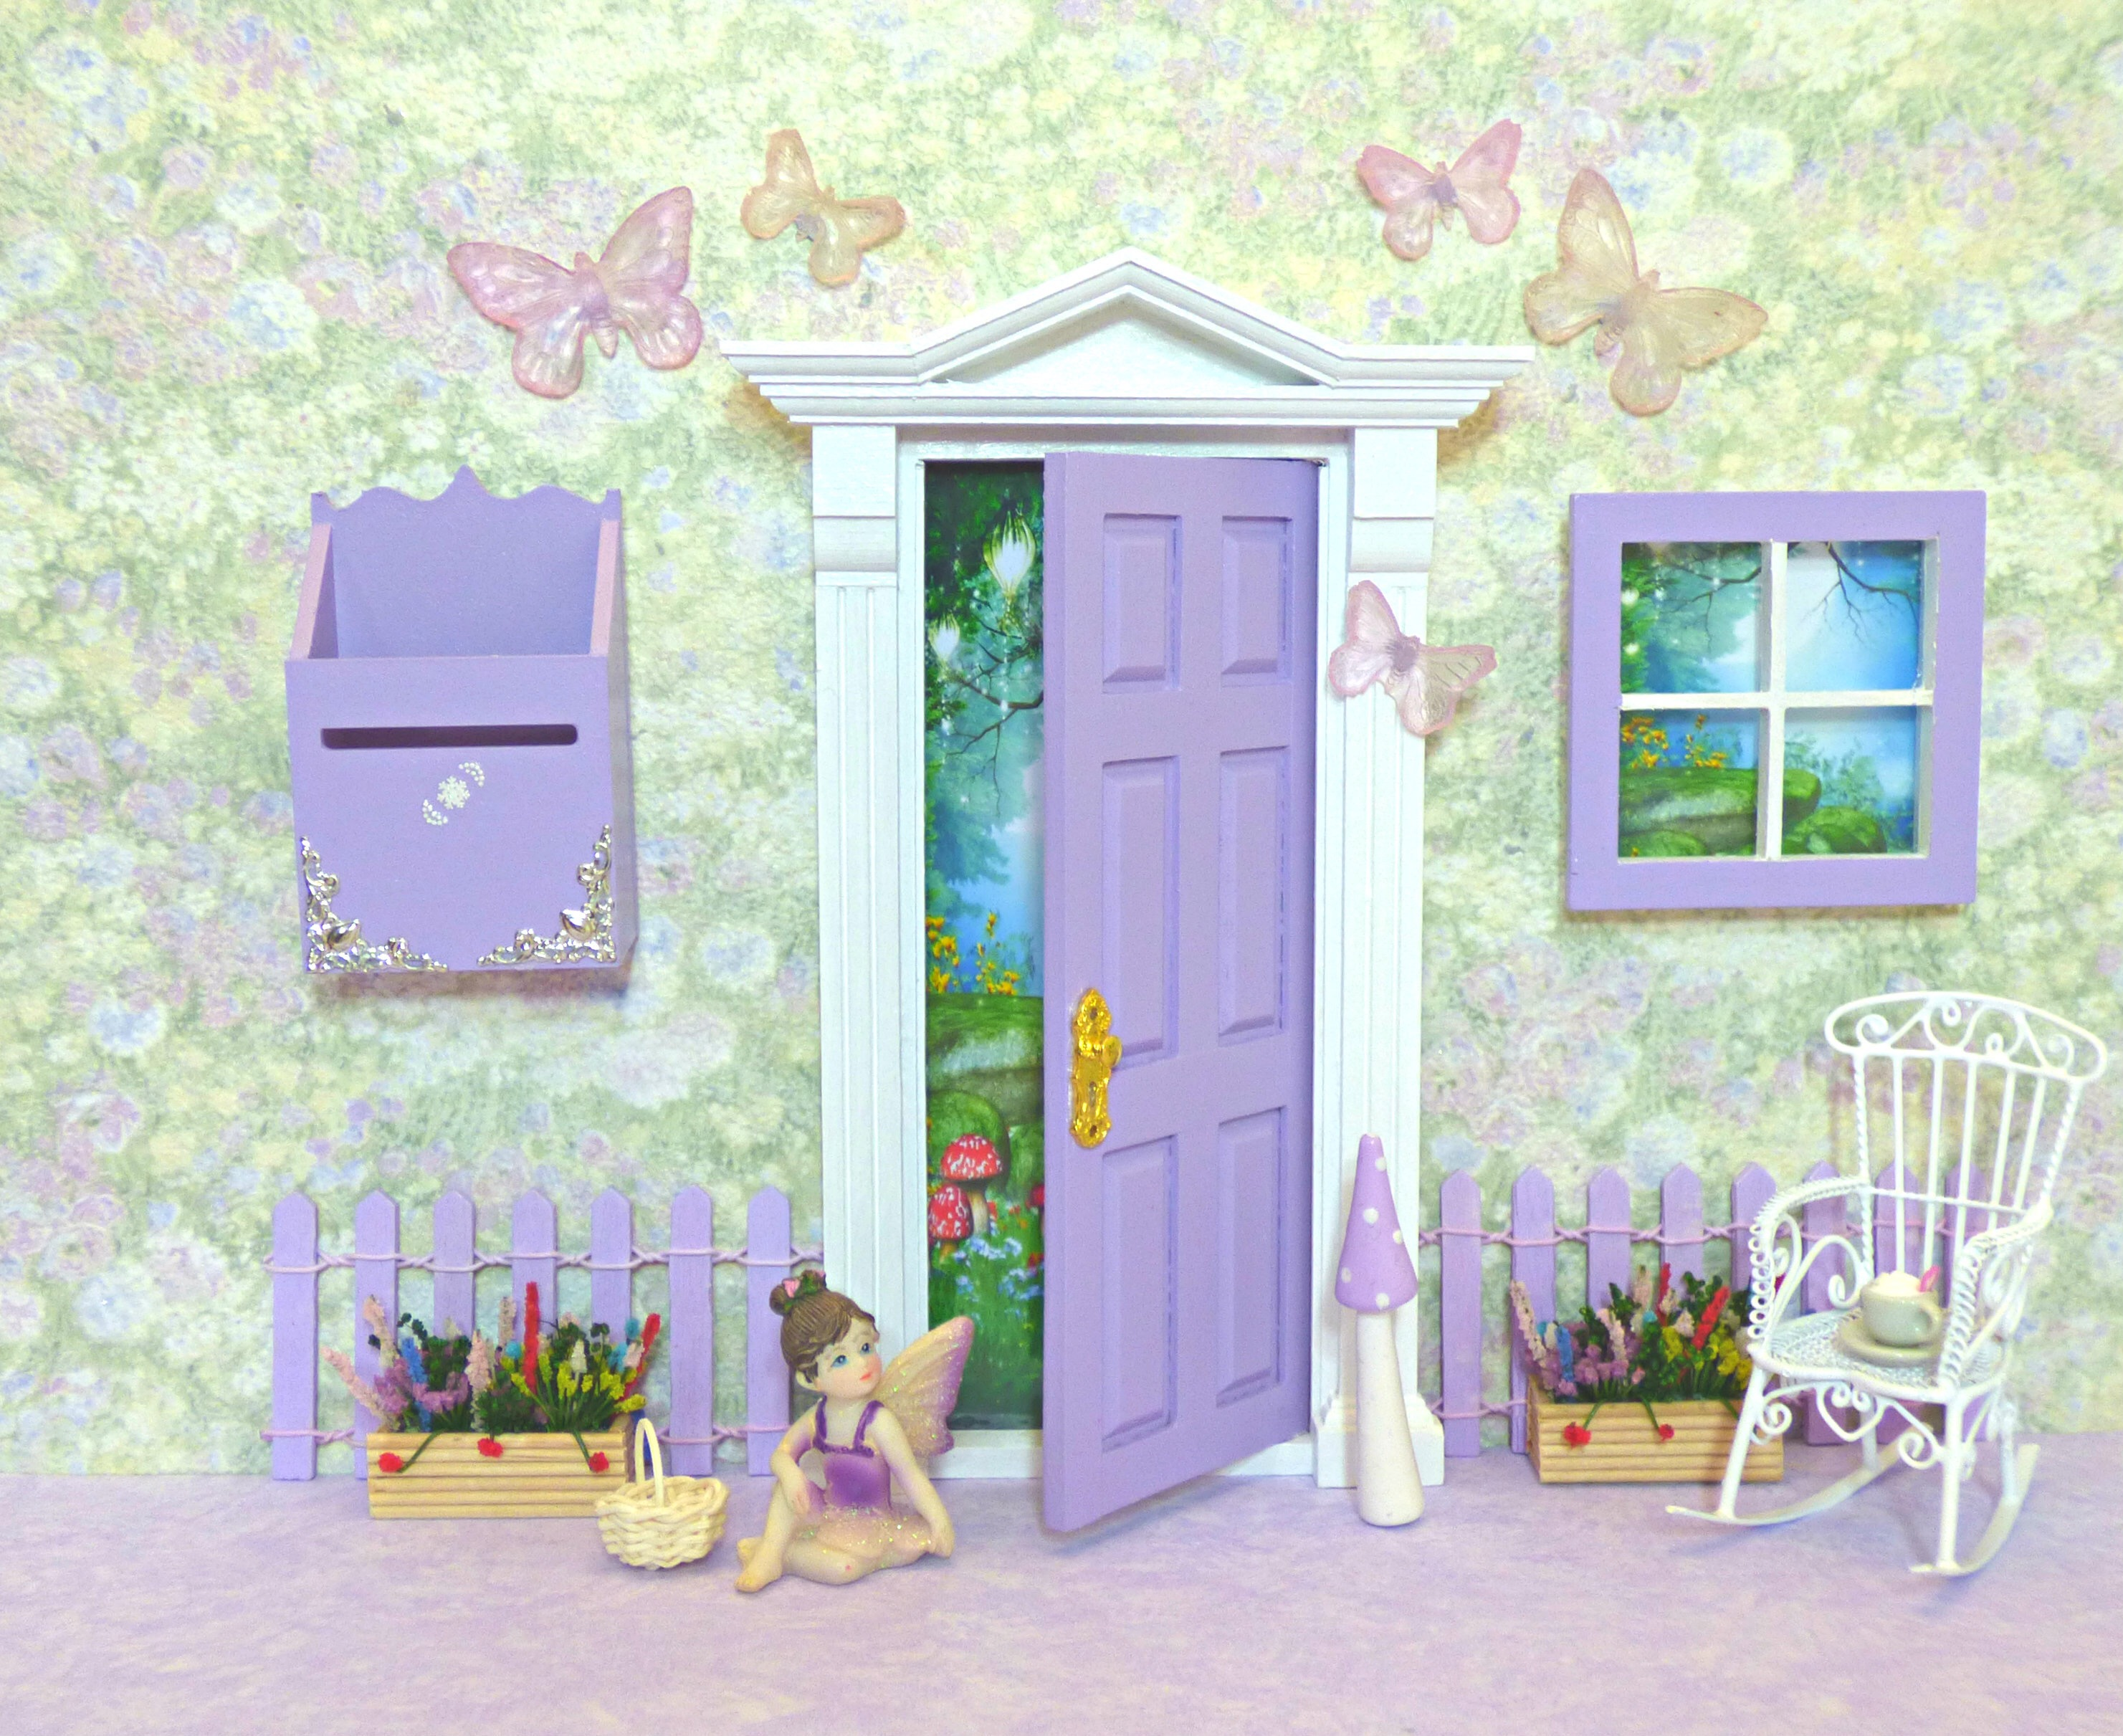 Opening Fairy Doors The Ultimate Present This Year